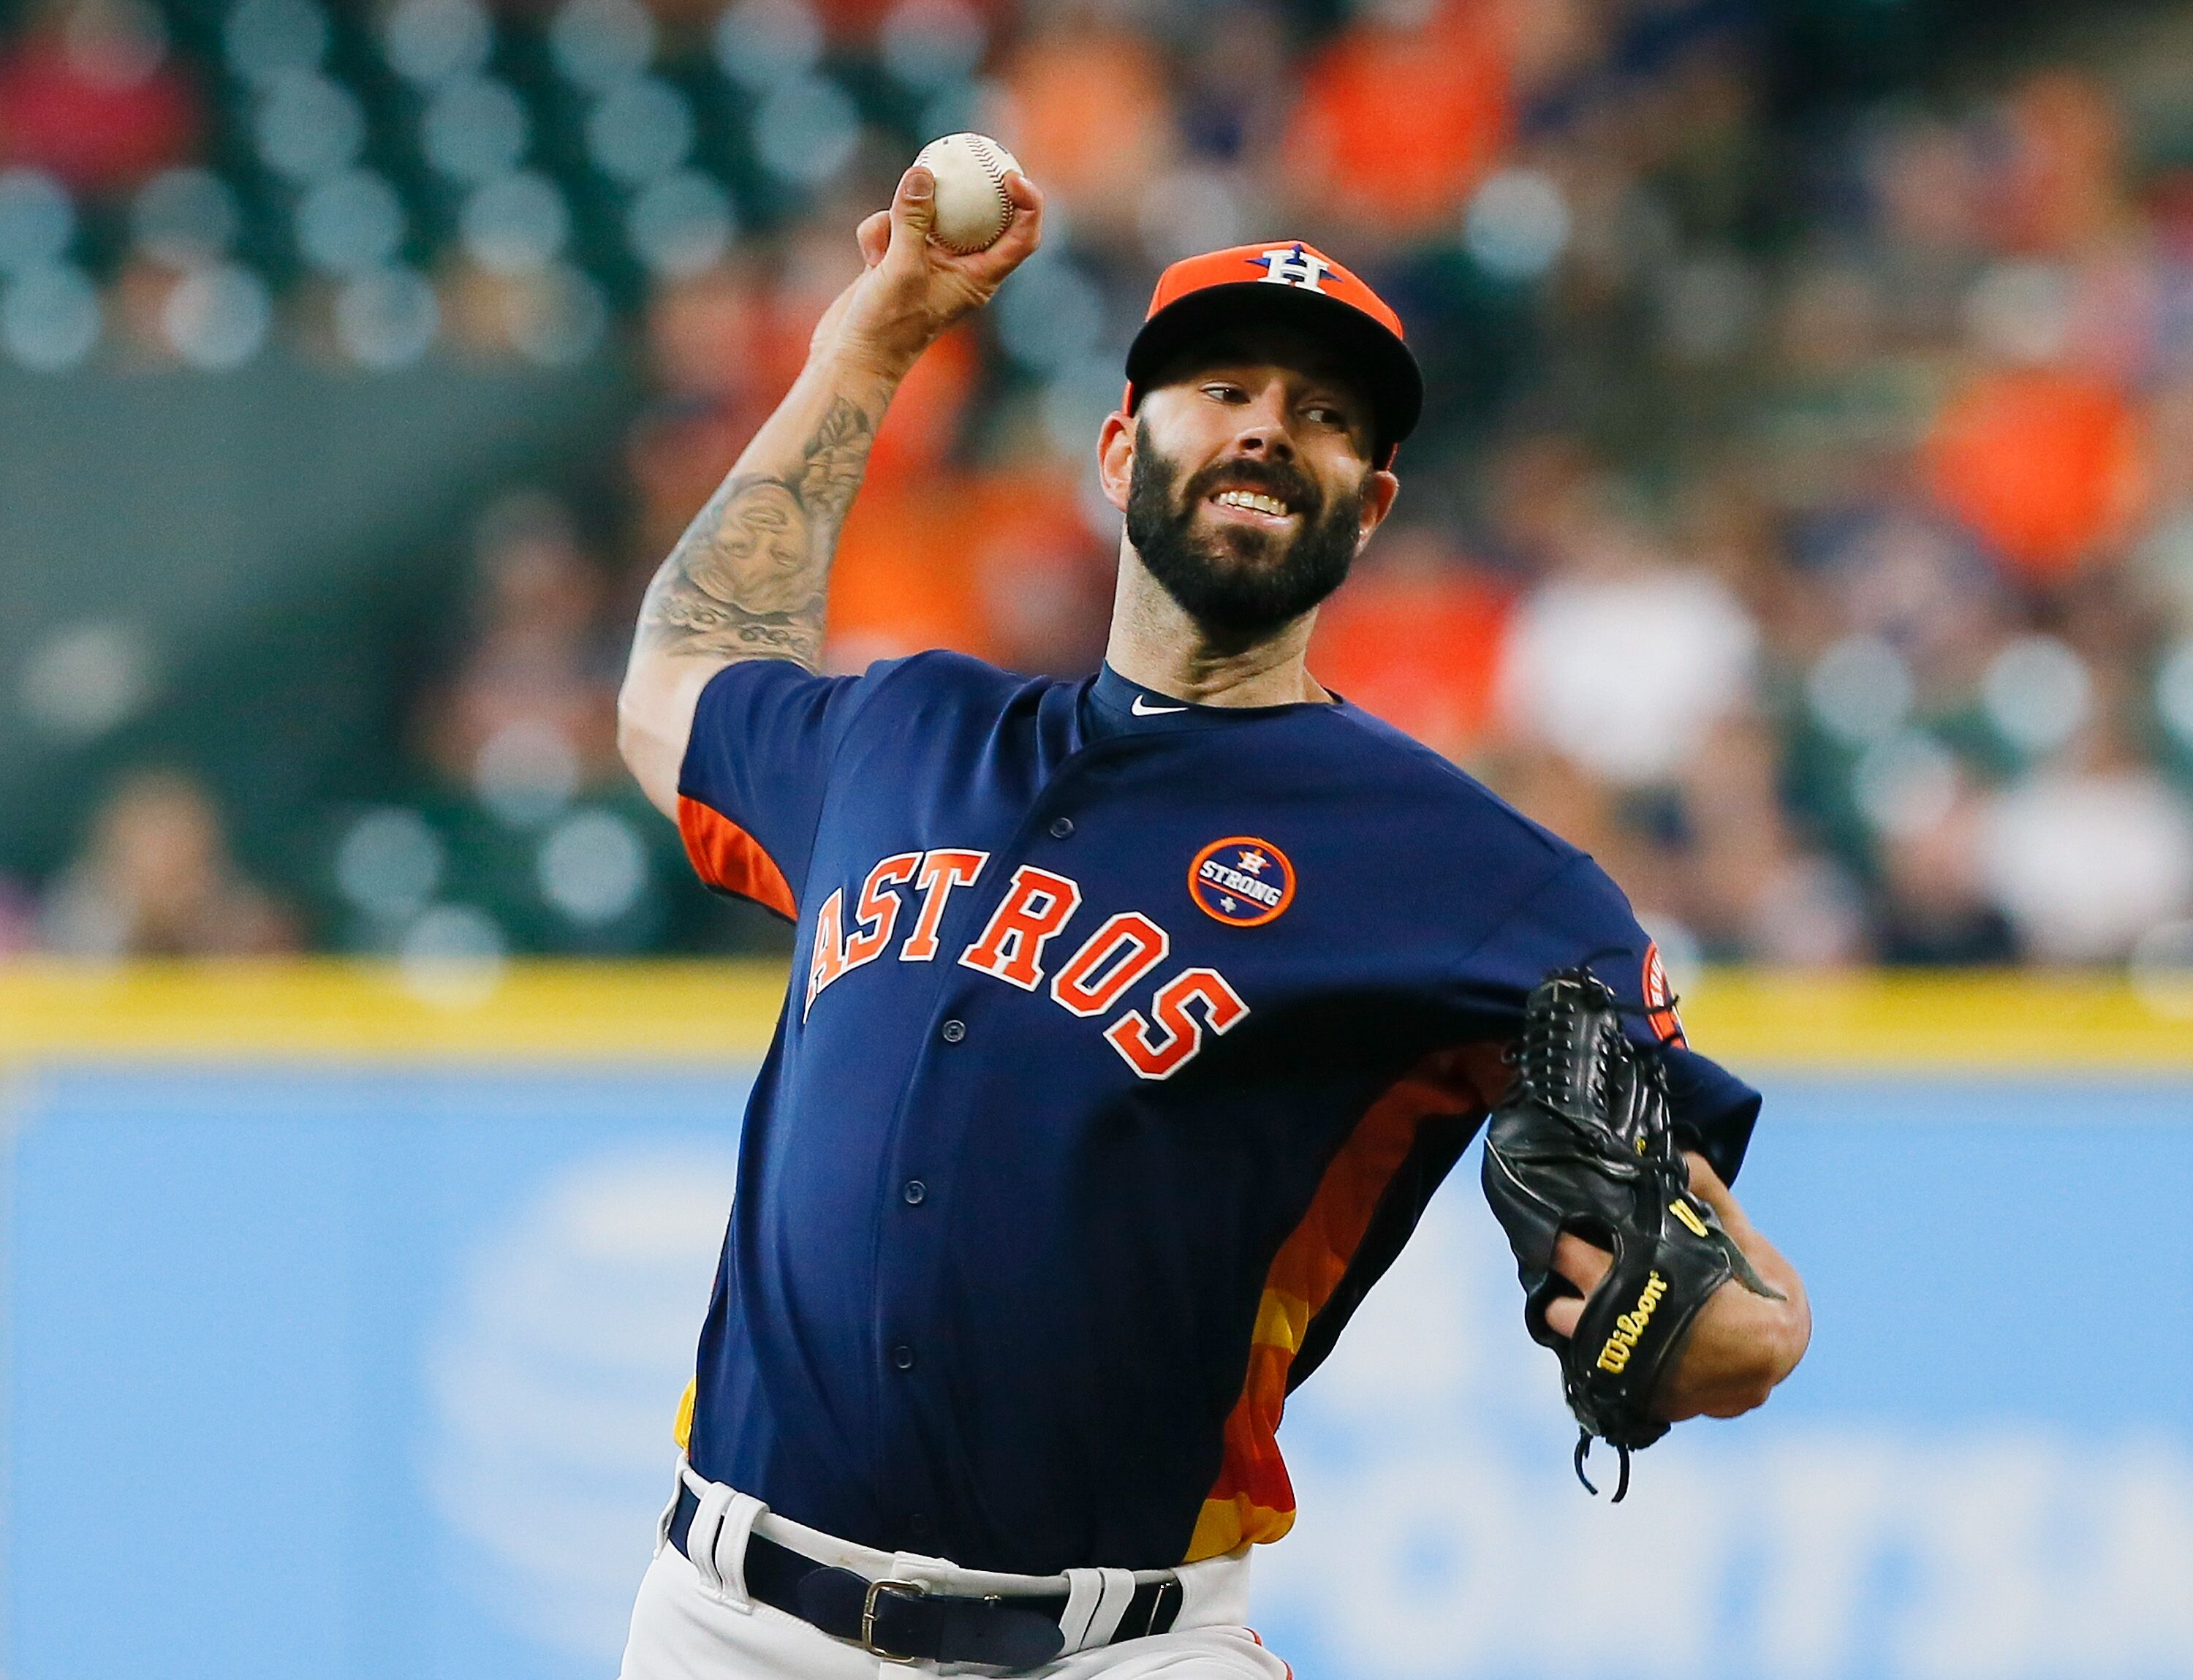 842258188-new-york-mets-v-houston-astros.jpg